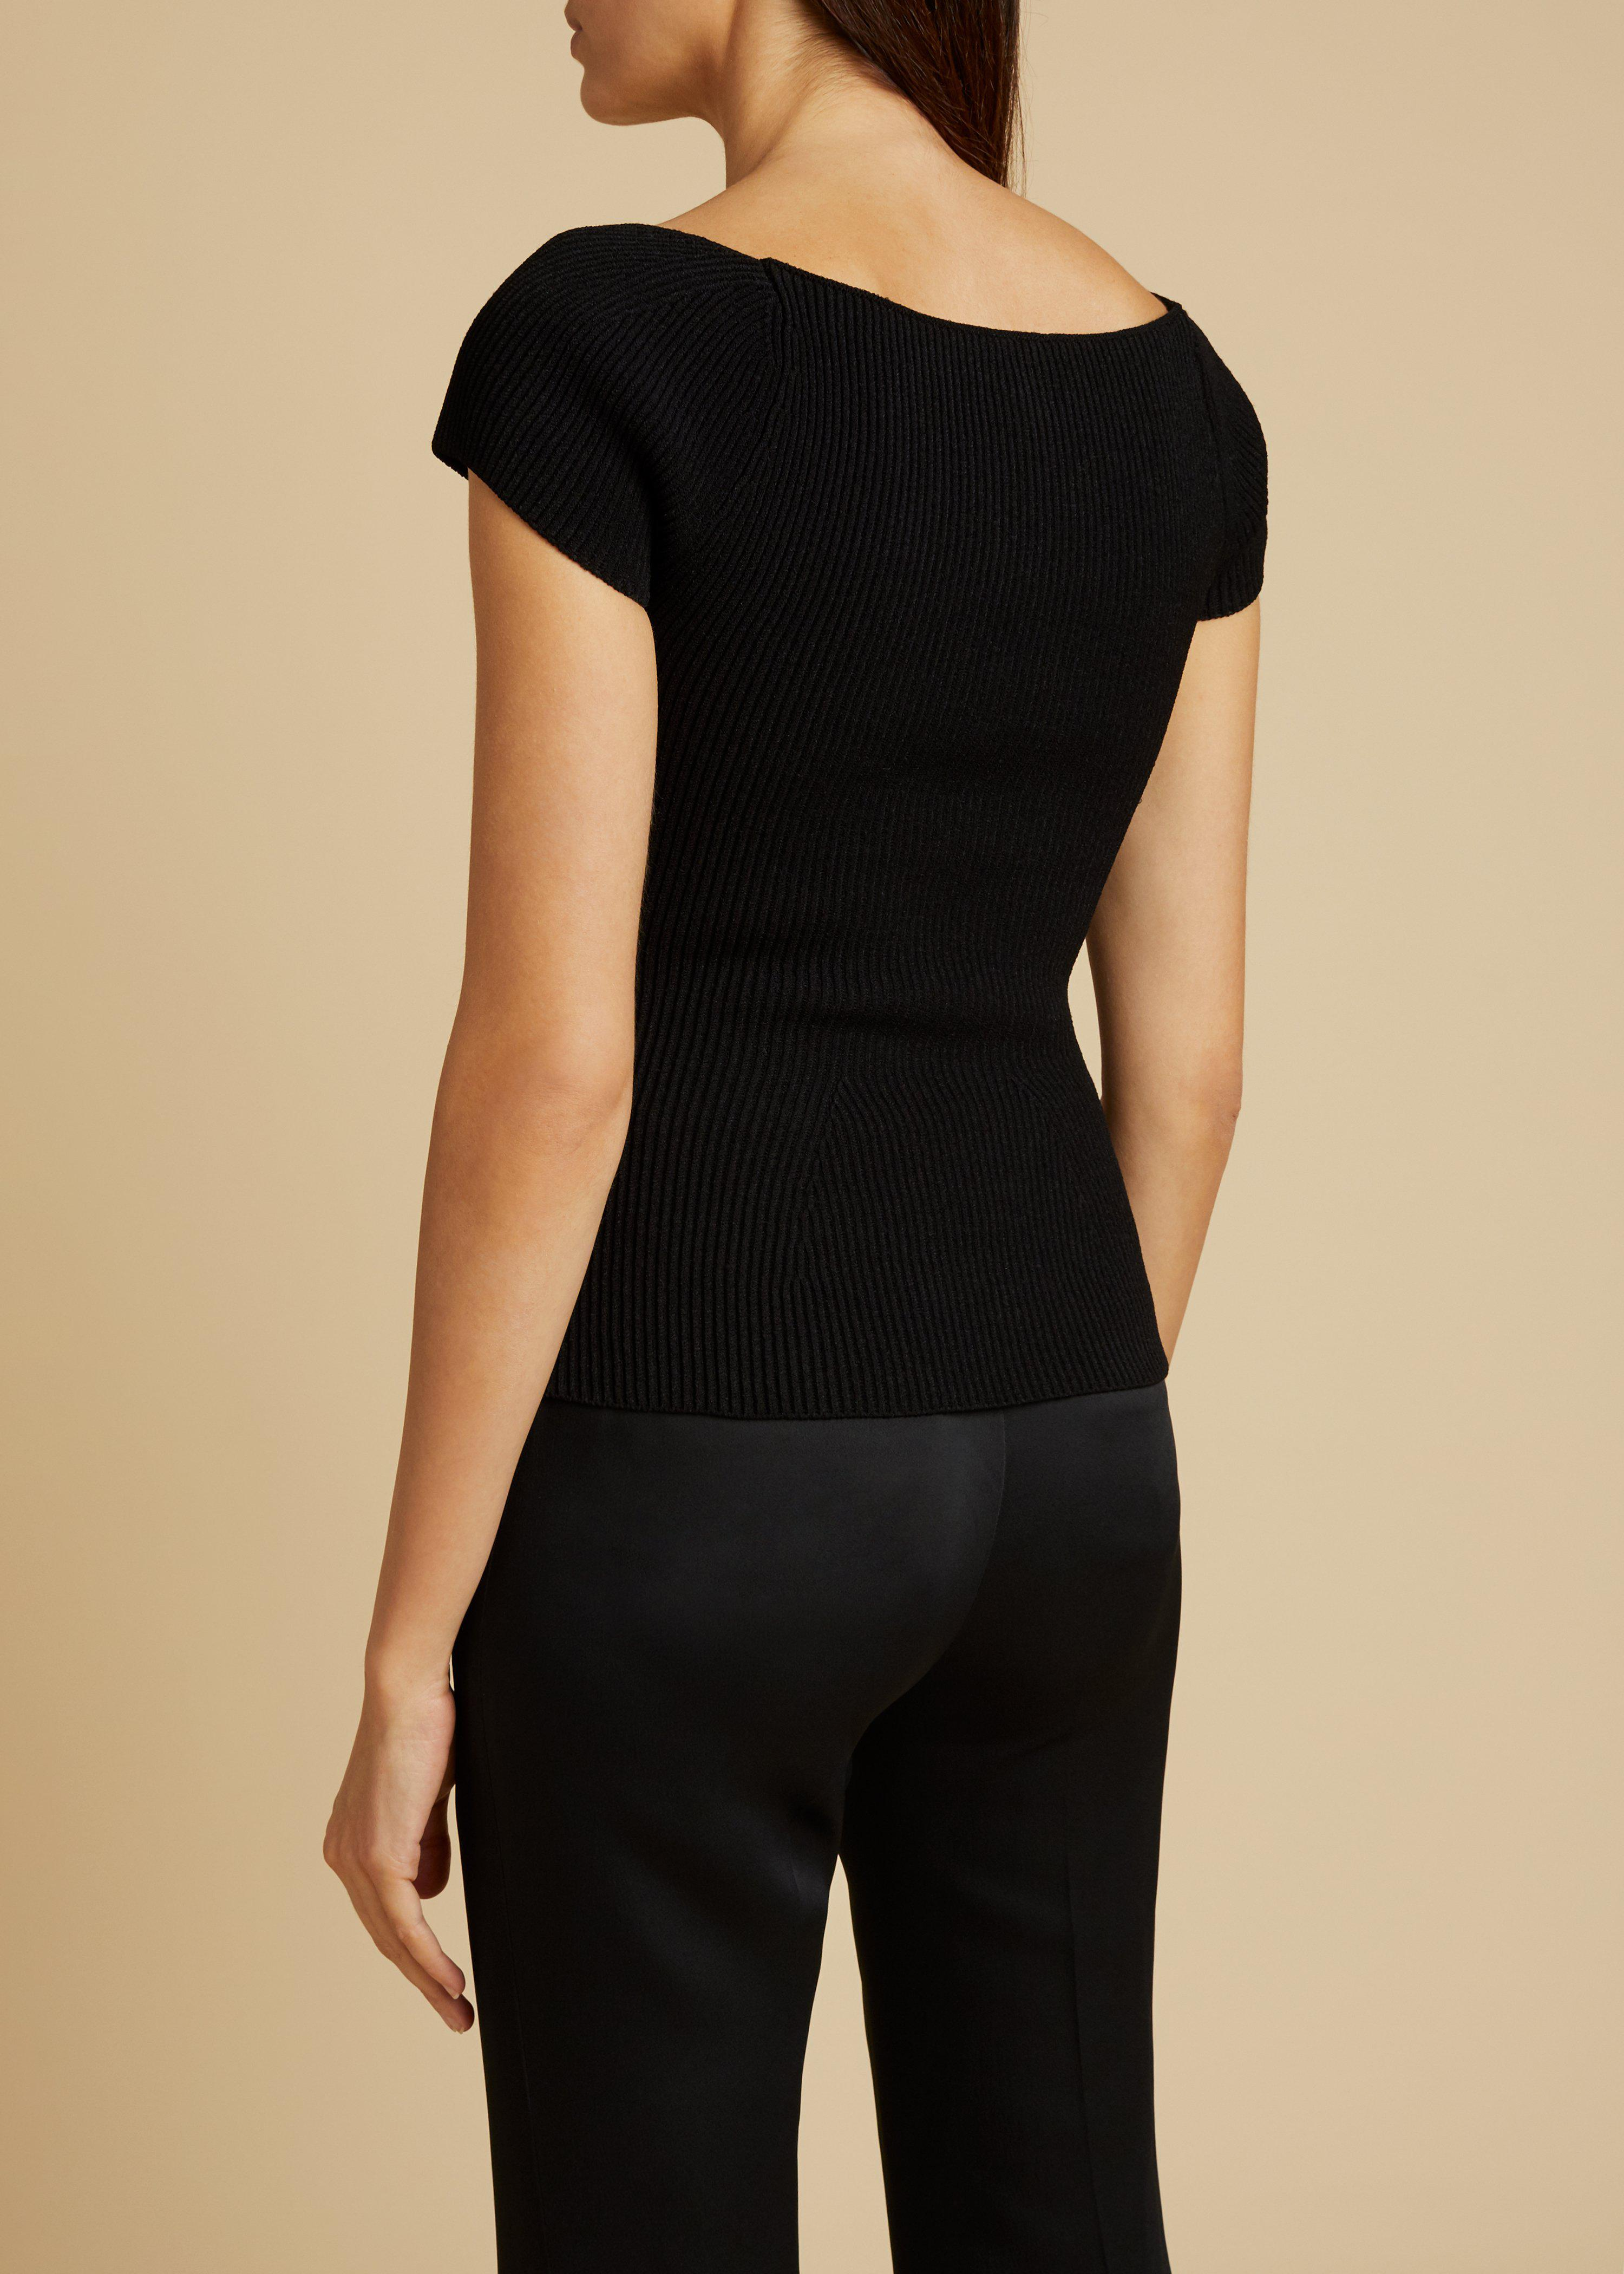 The Ista Top in Black 2